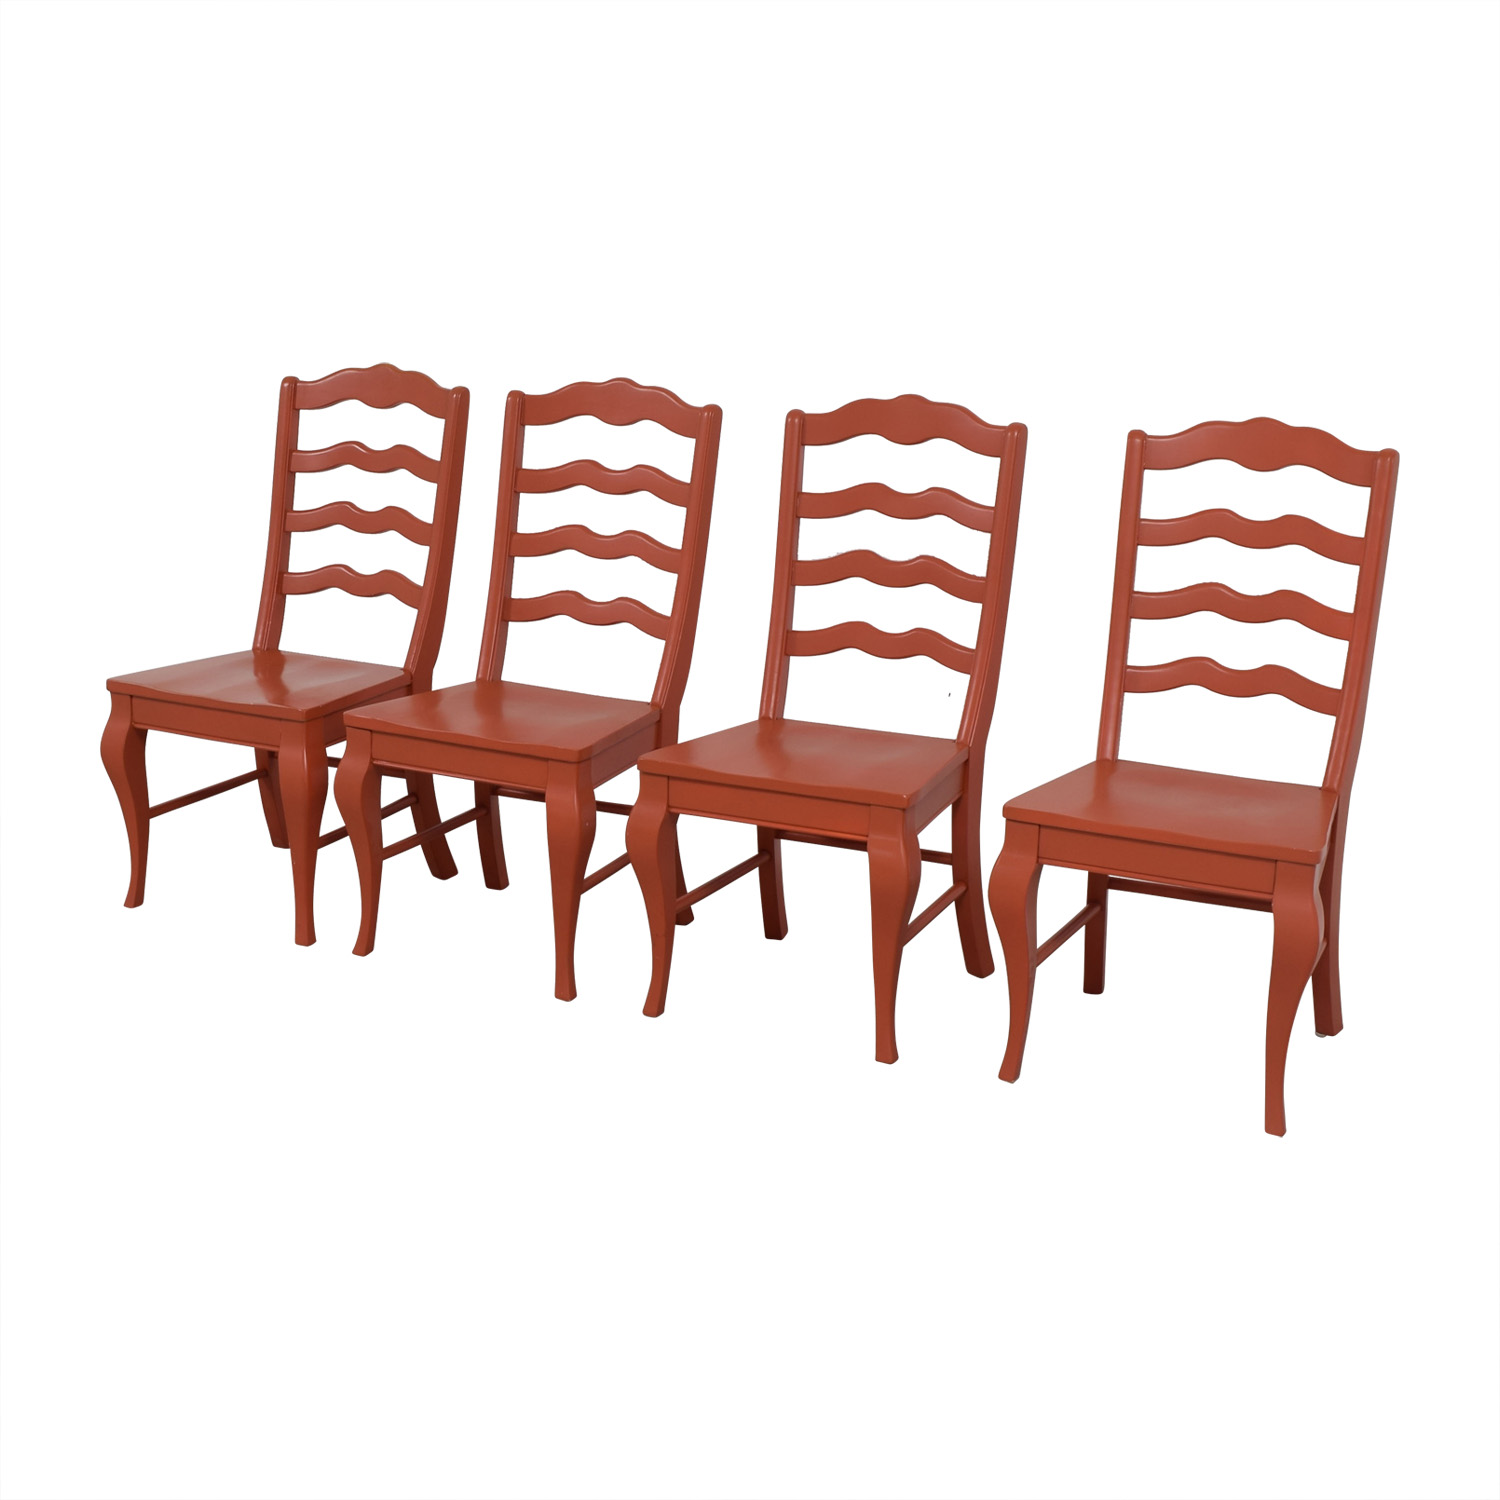 Shop Dining Room Chairs: Broyhill Broyhill Dining Room Chairs / Chairs